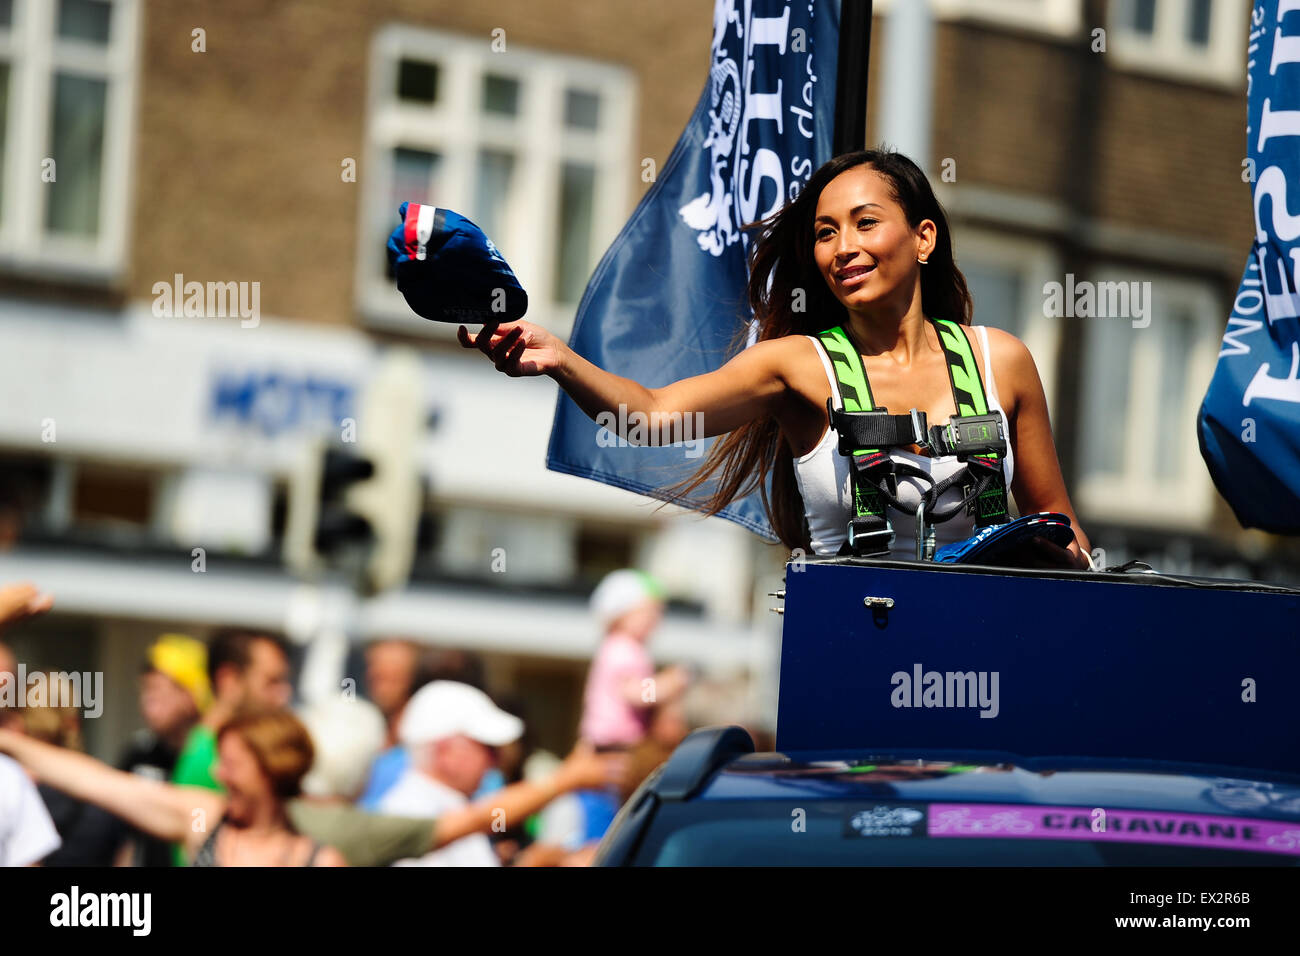 Utrecht, Netherlands. 5. July, 2015. A promoter from the Publicity Caravan distributes cycling caps to the public - Stock Image